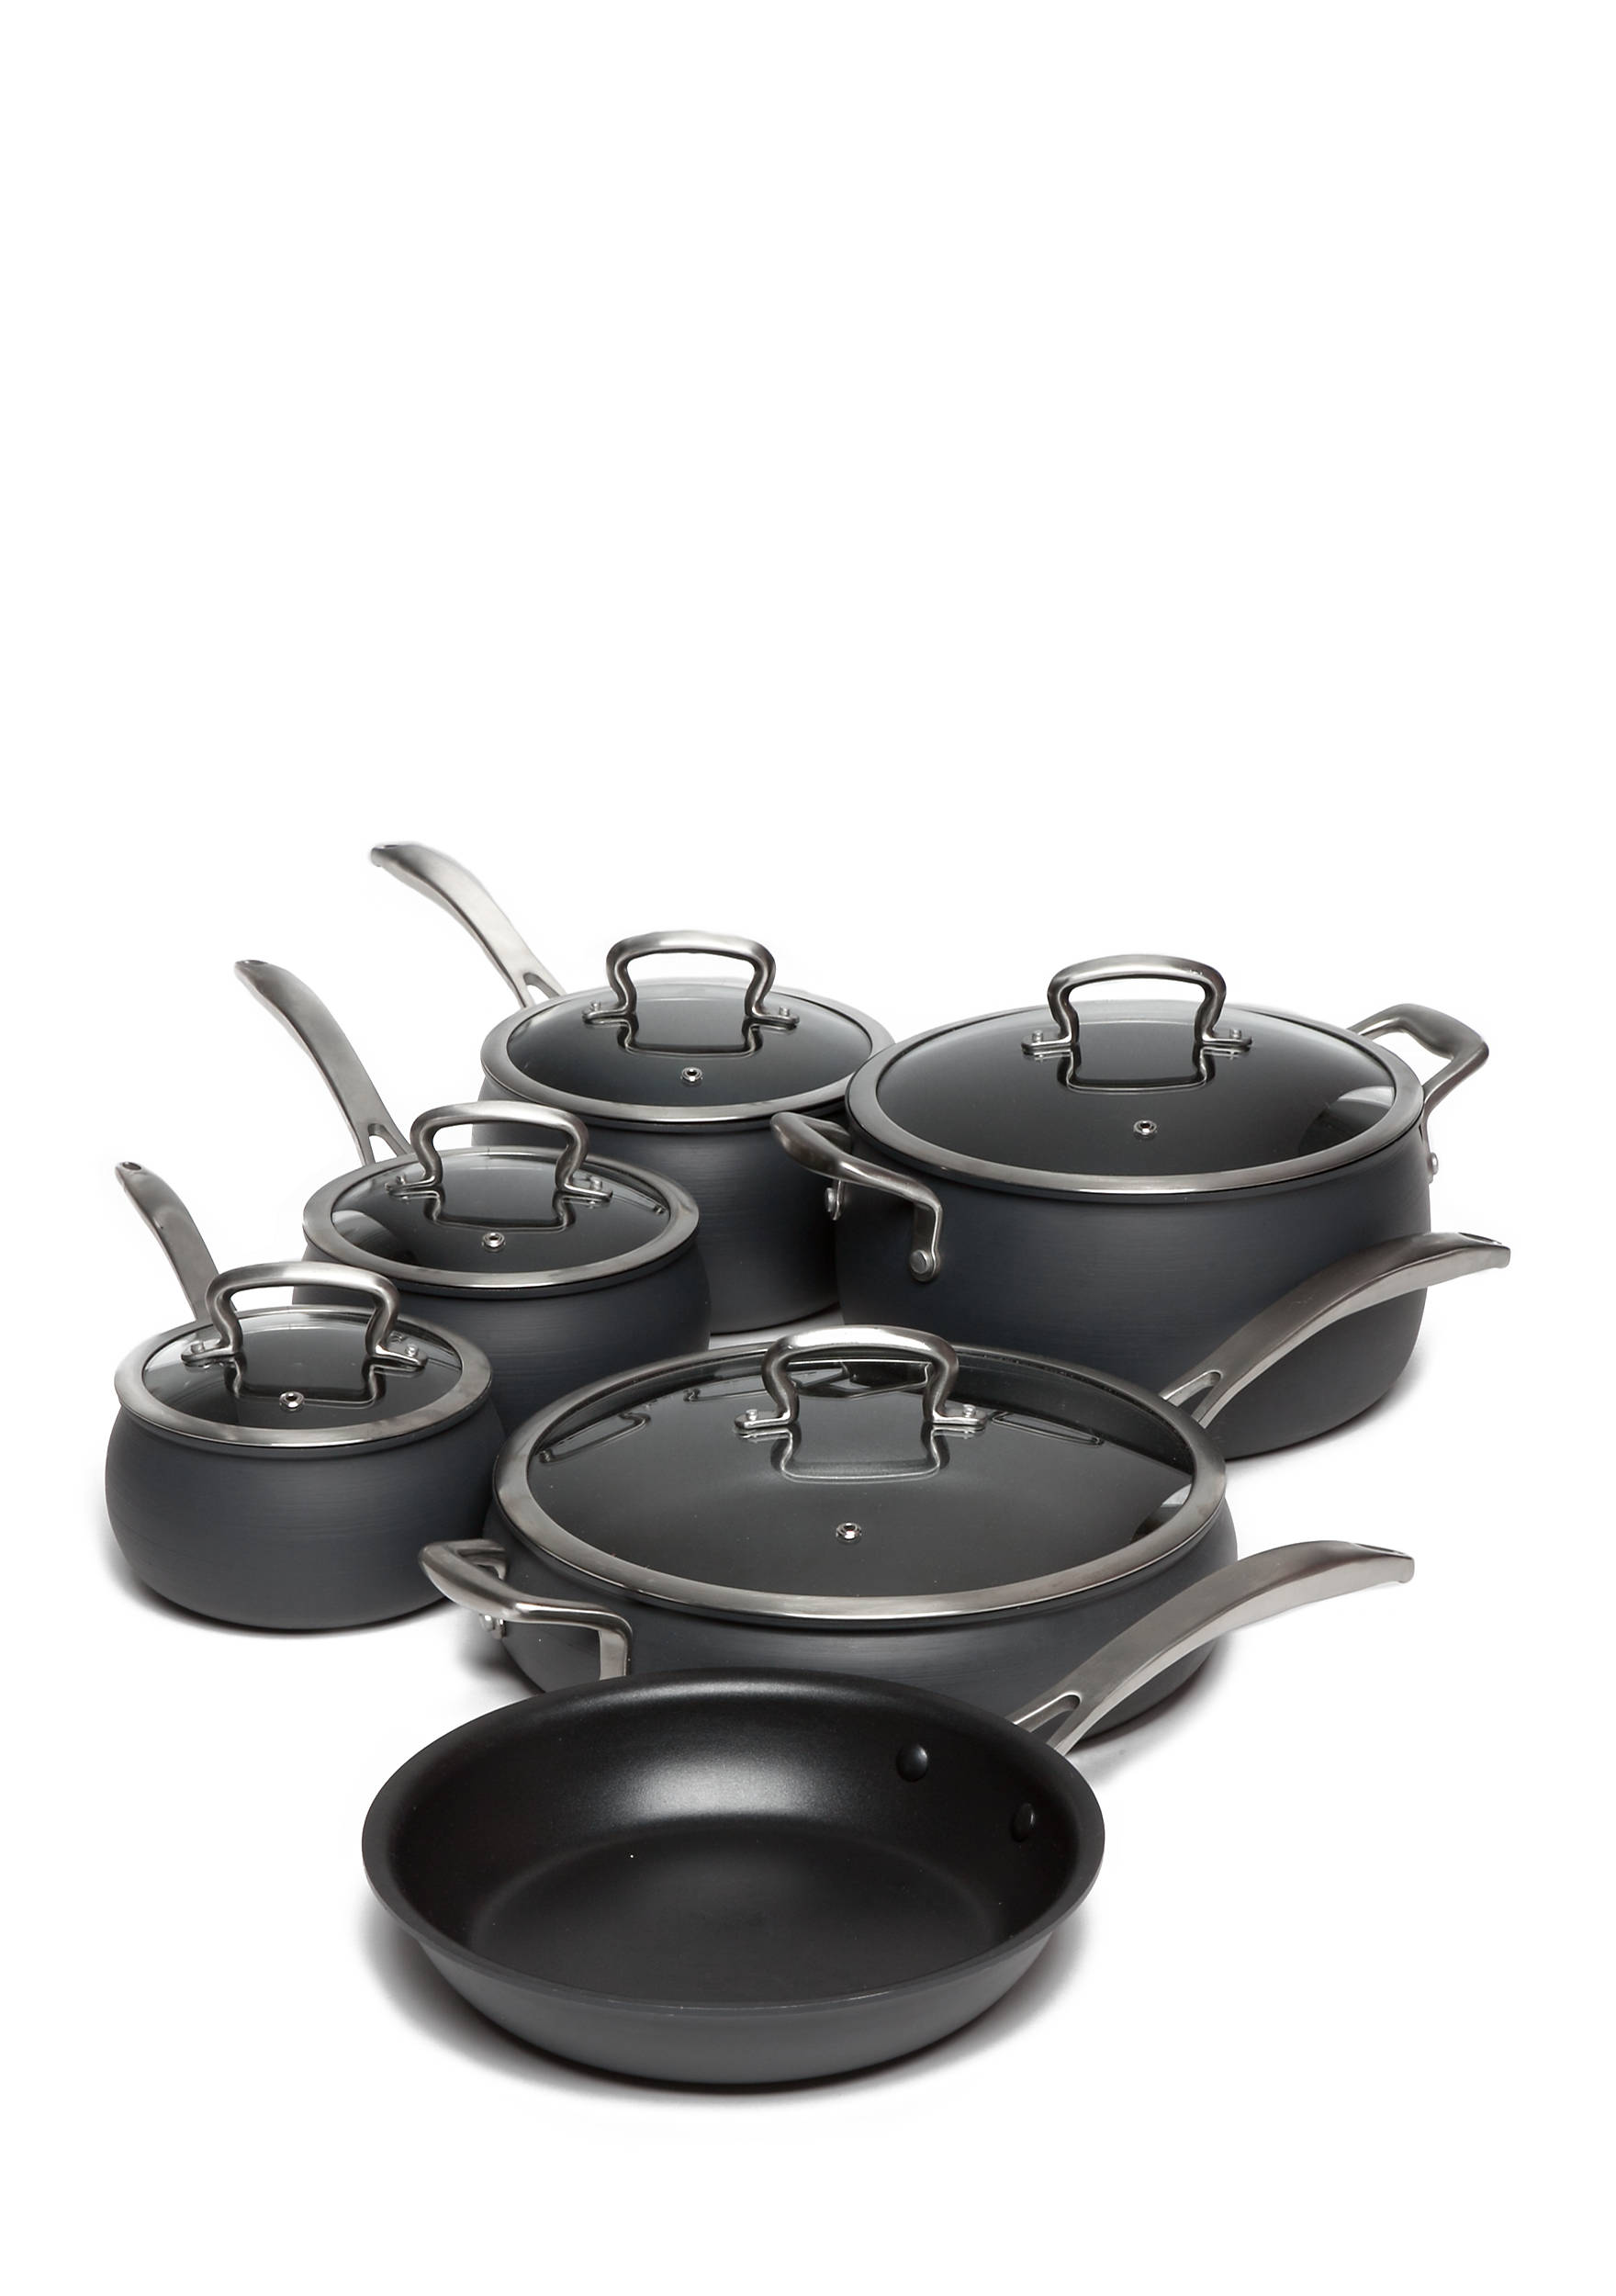 Biltmore11-Piece Non-Stick Safe Hard Anodized Belly Cookware Set